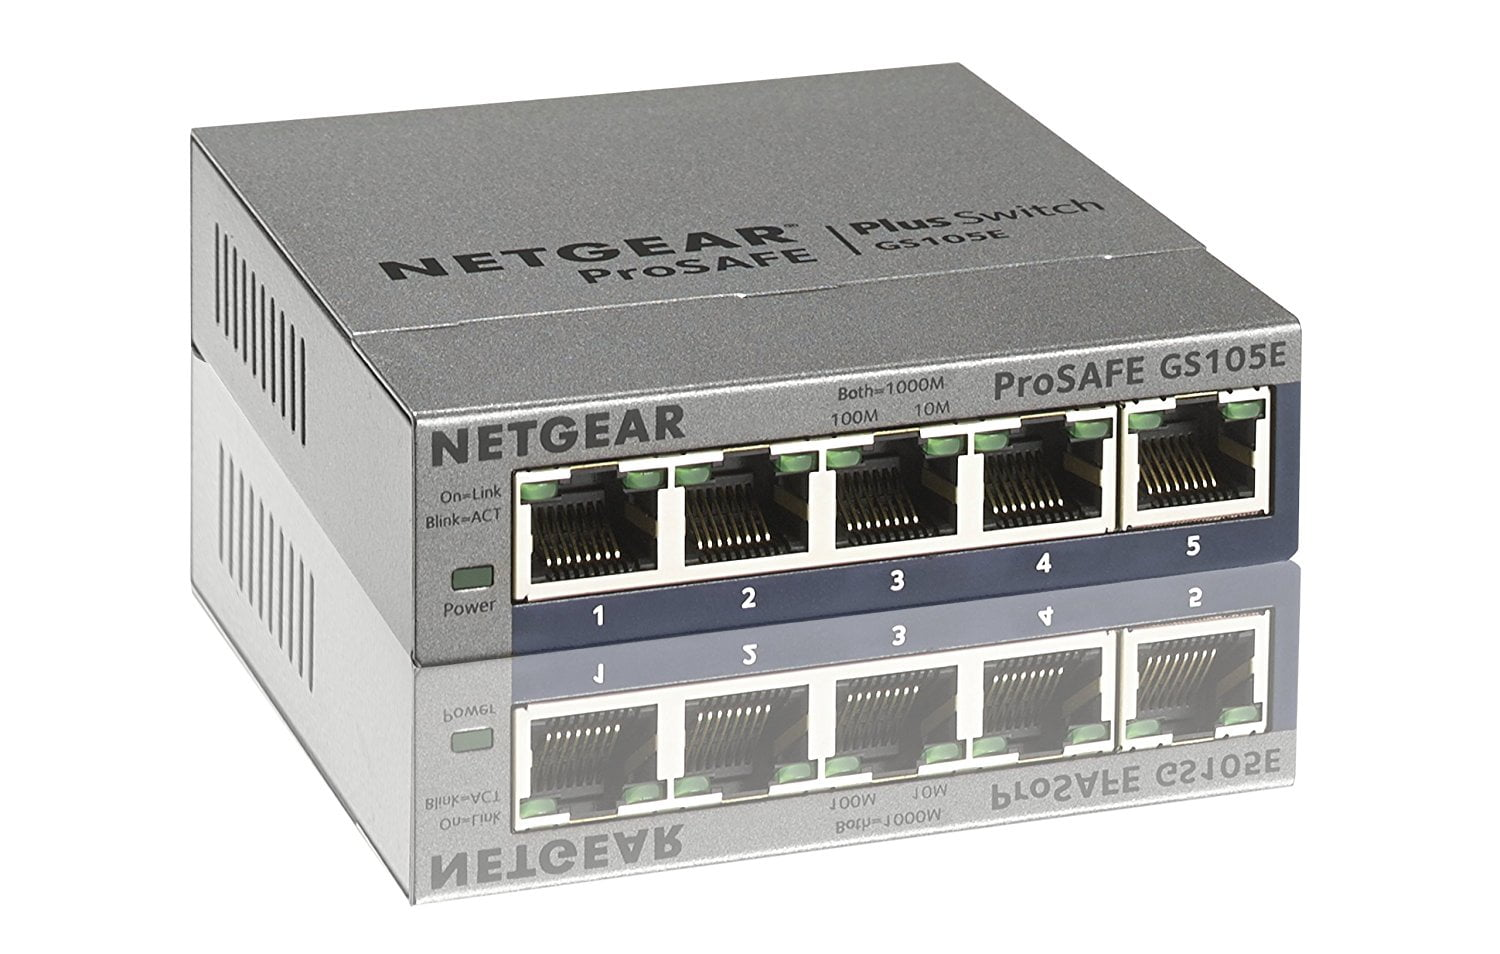 Netgear Switch GS105Ev2 with german and japanese interface